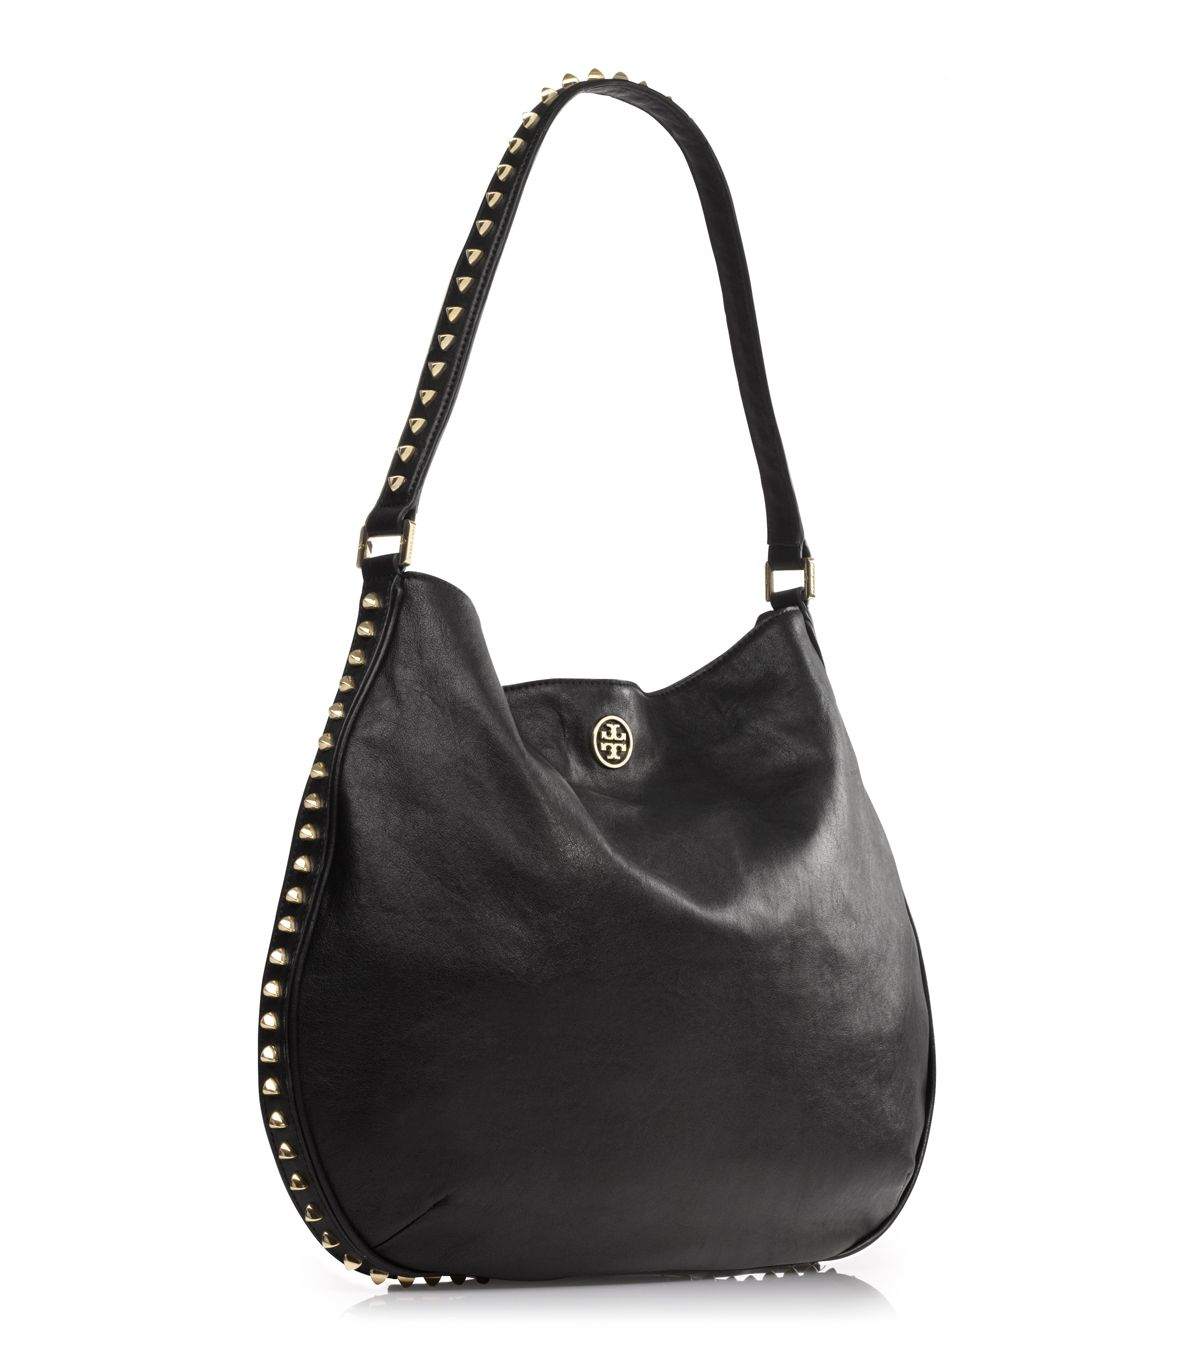 9a377e9270d3 Lyst - Tory Burch Pyramid Stud Hobo in Black